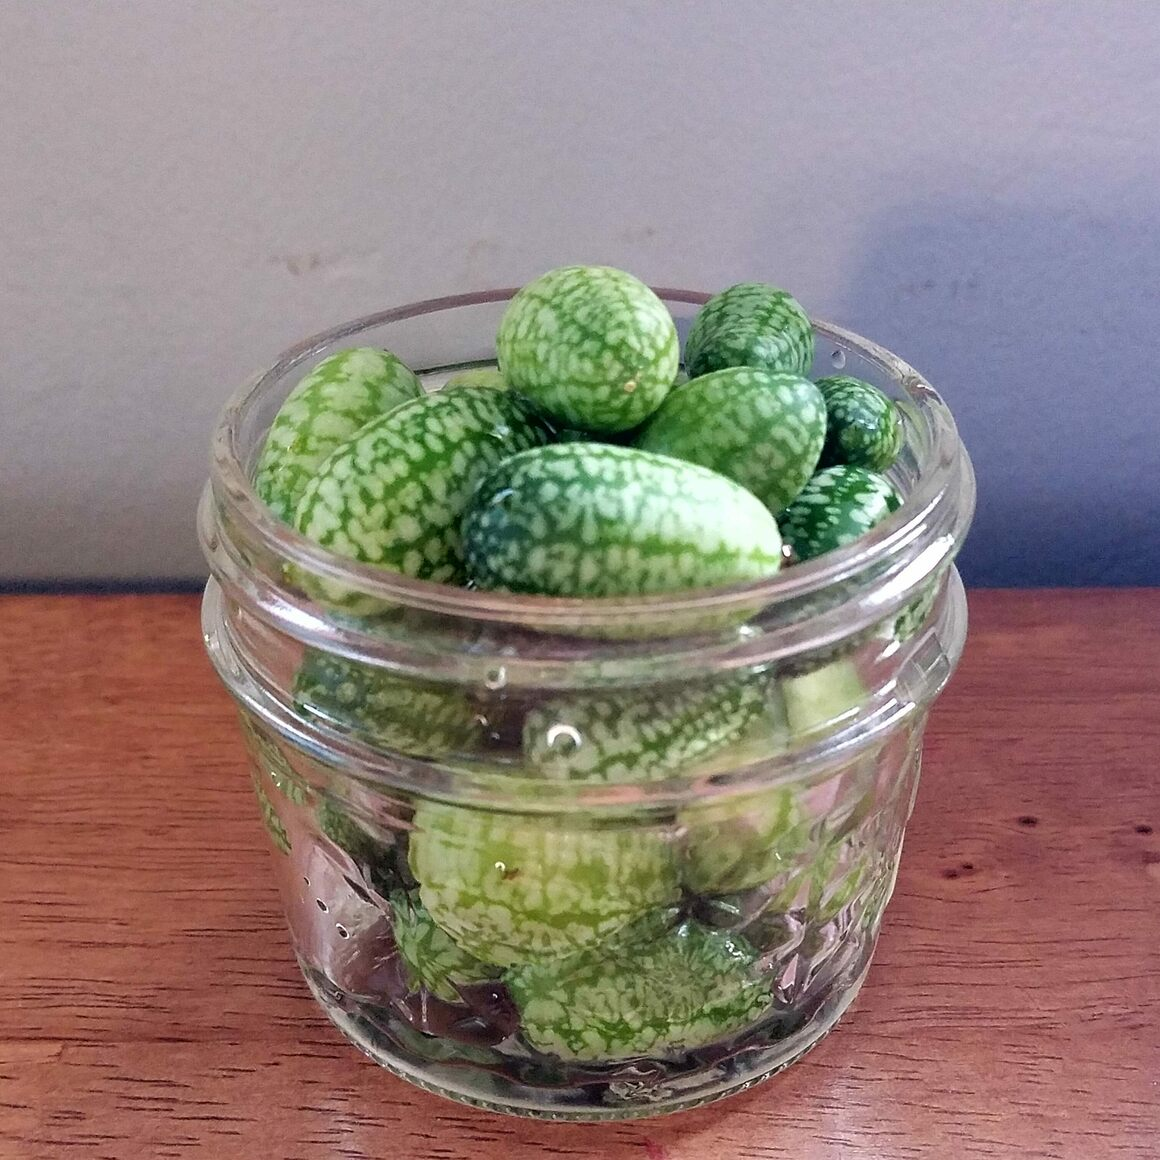 They look like mini melons, but they taste like sour cucumbers.